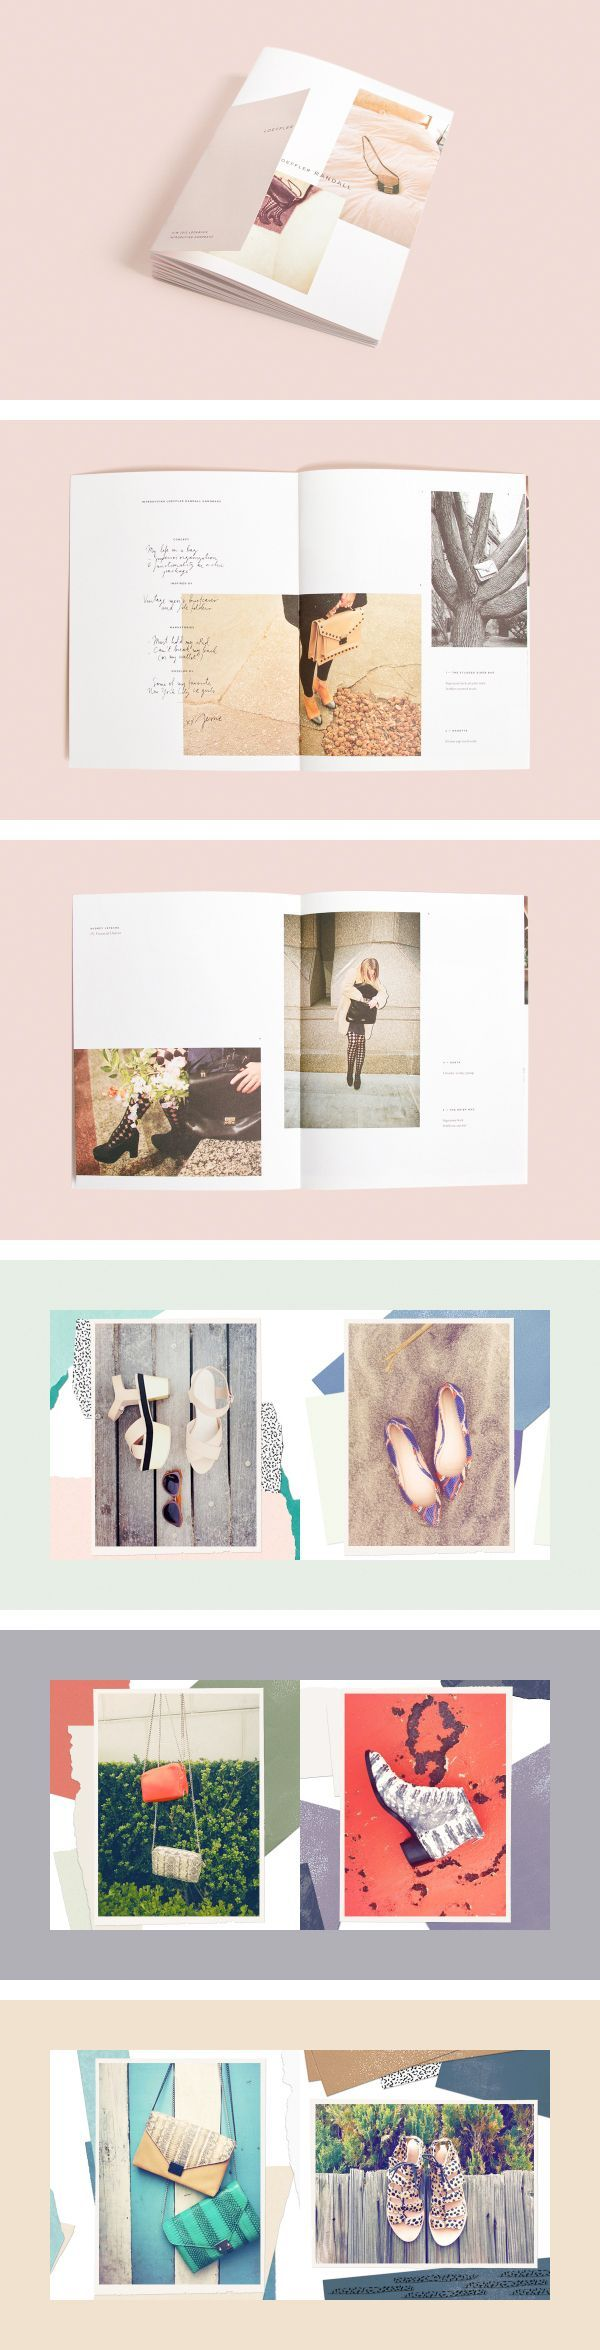 Scrapbook style layout for a magazine or brochure. Love the simplicity!